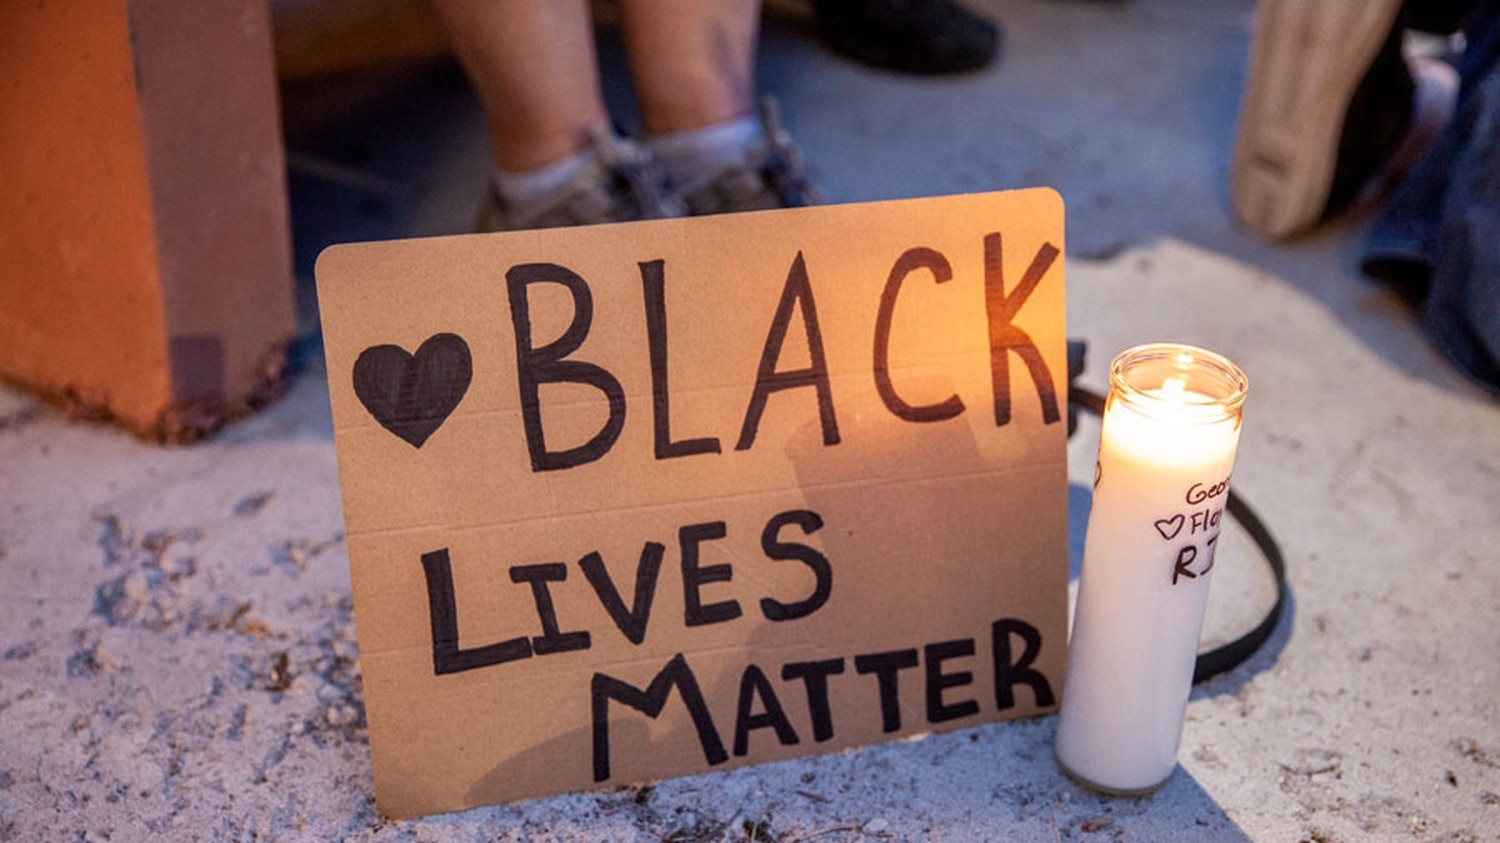 One of many Black Lives Matter signs at Sunday's vigil for the death of George Floyd.